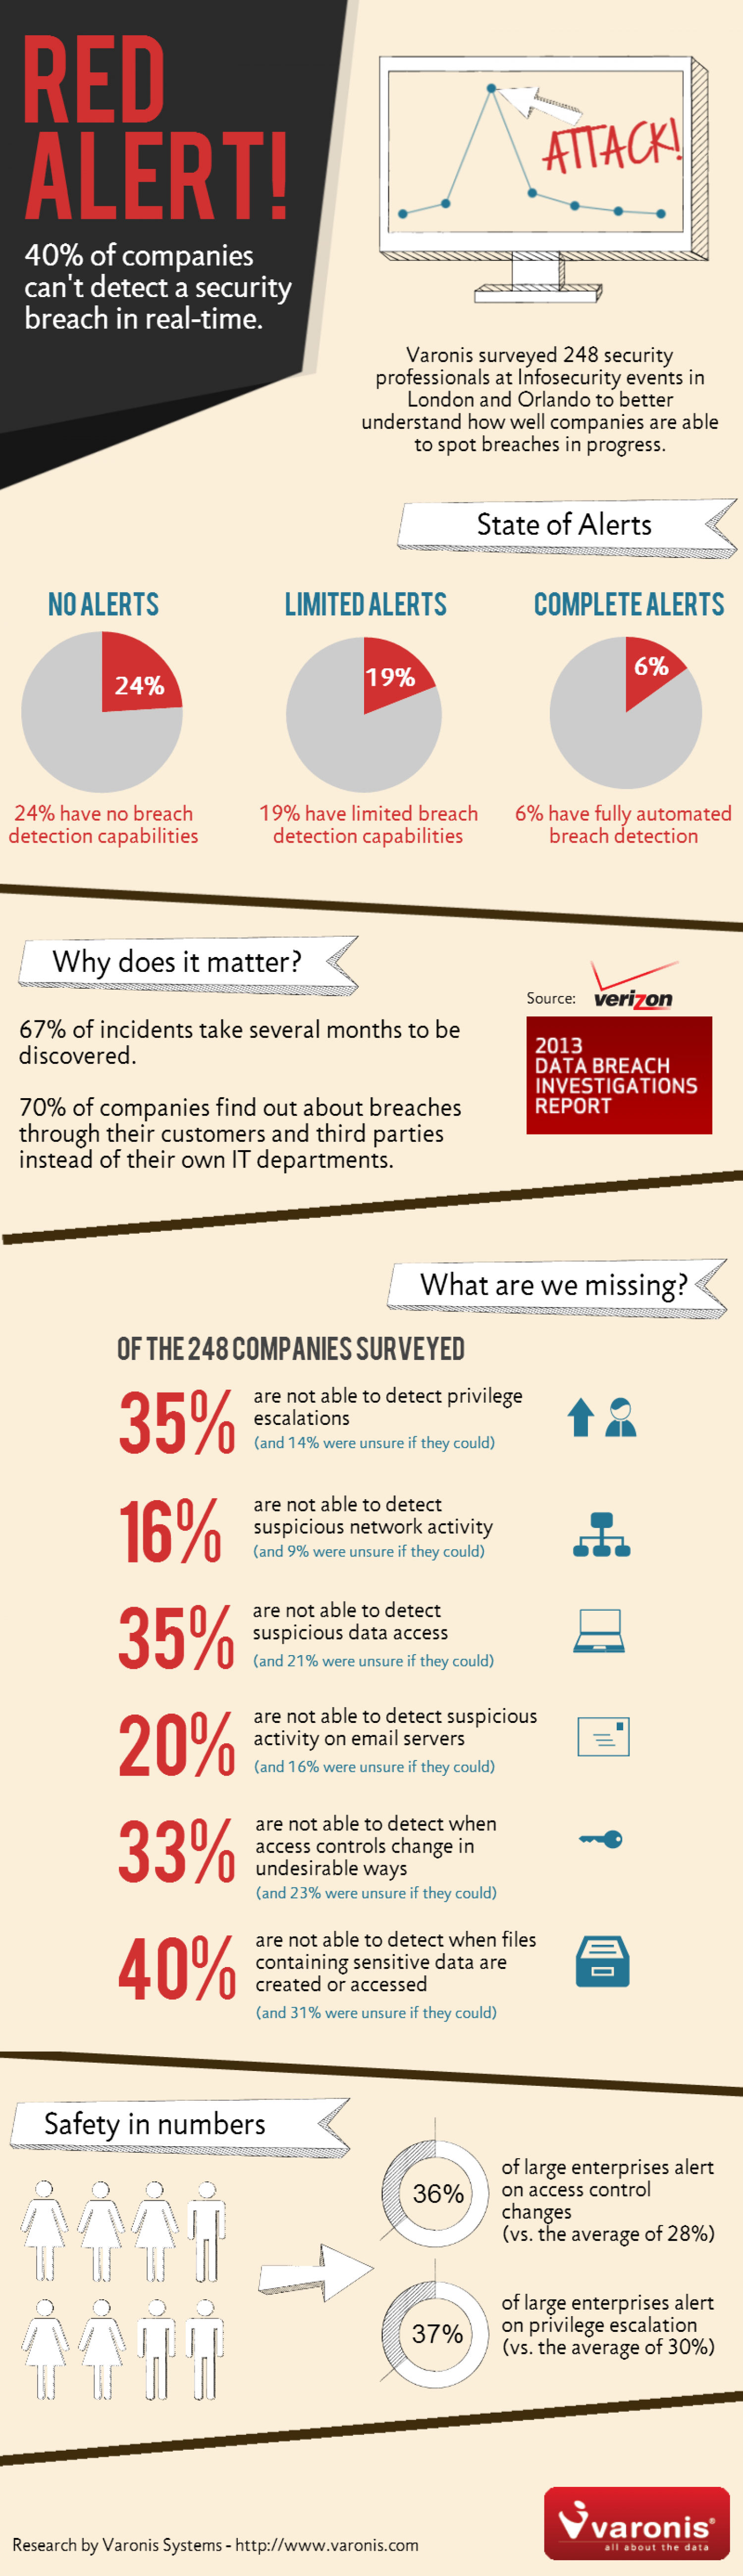 Red Alert - A Data Breach Report Infographic